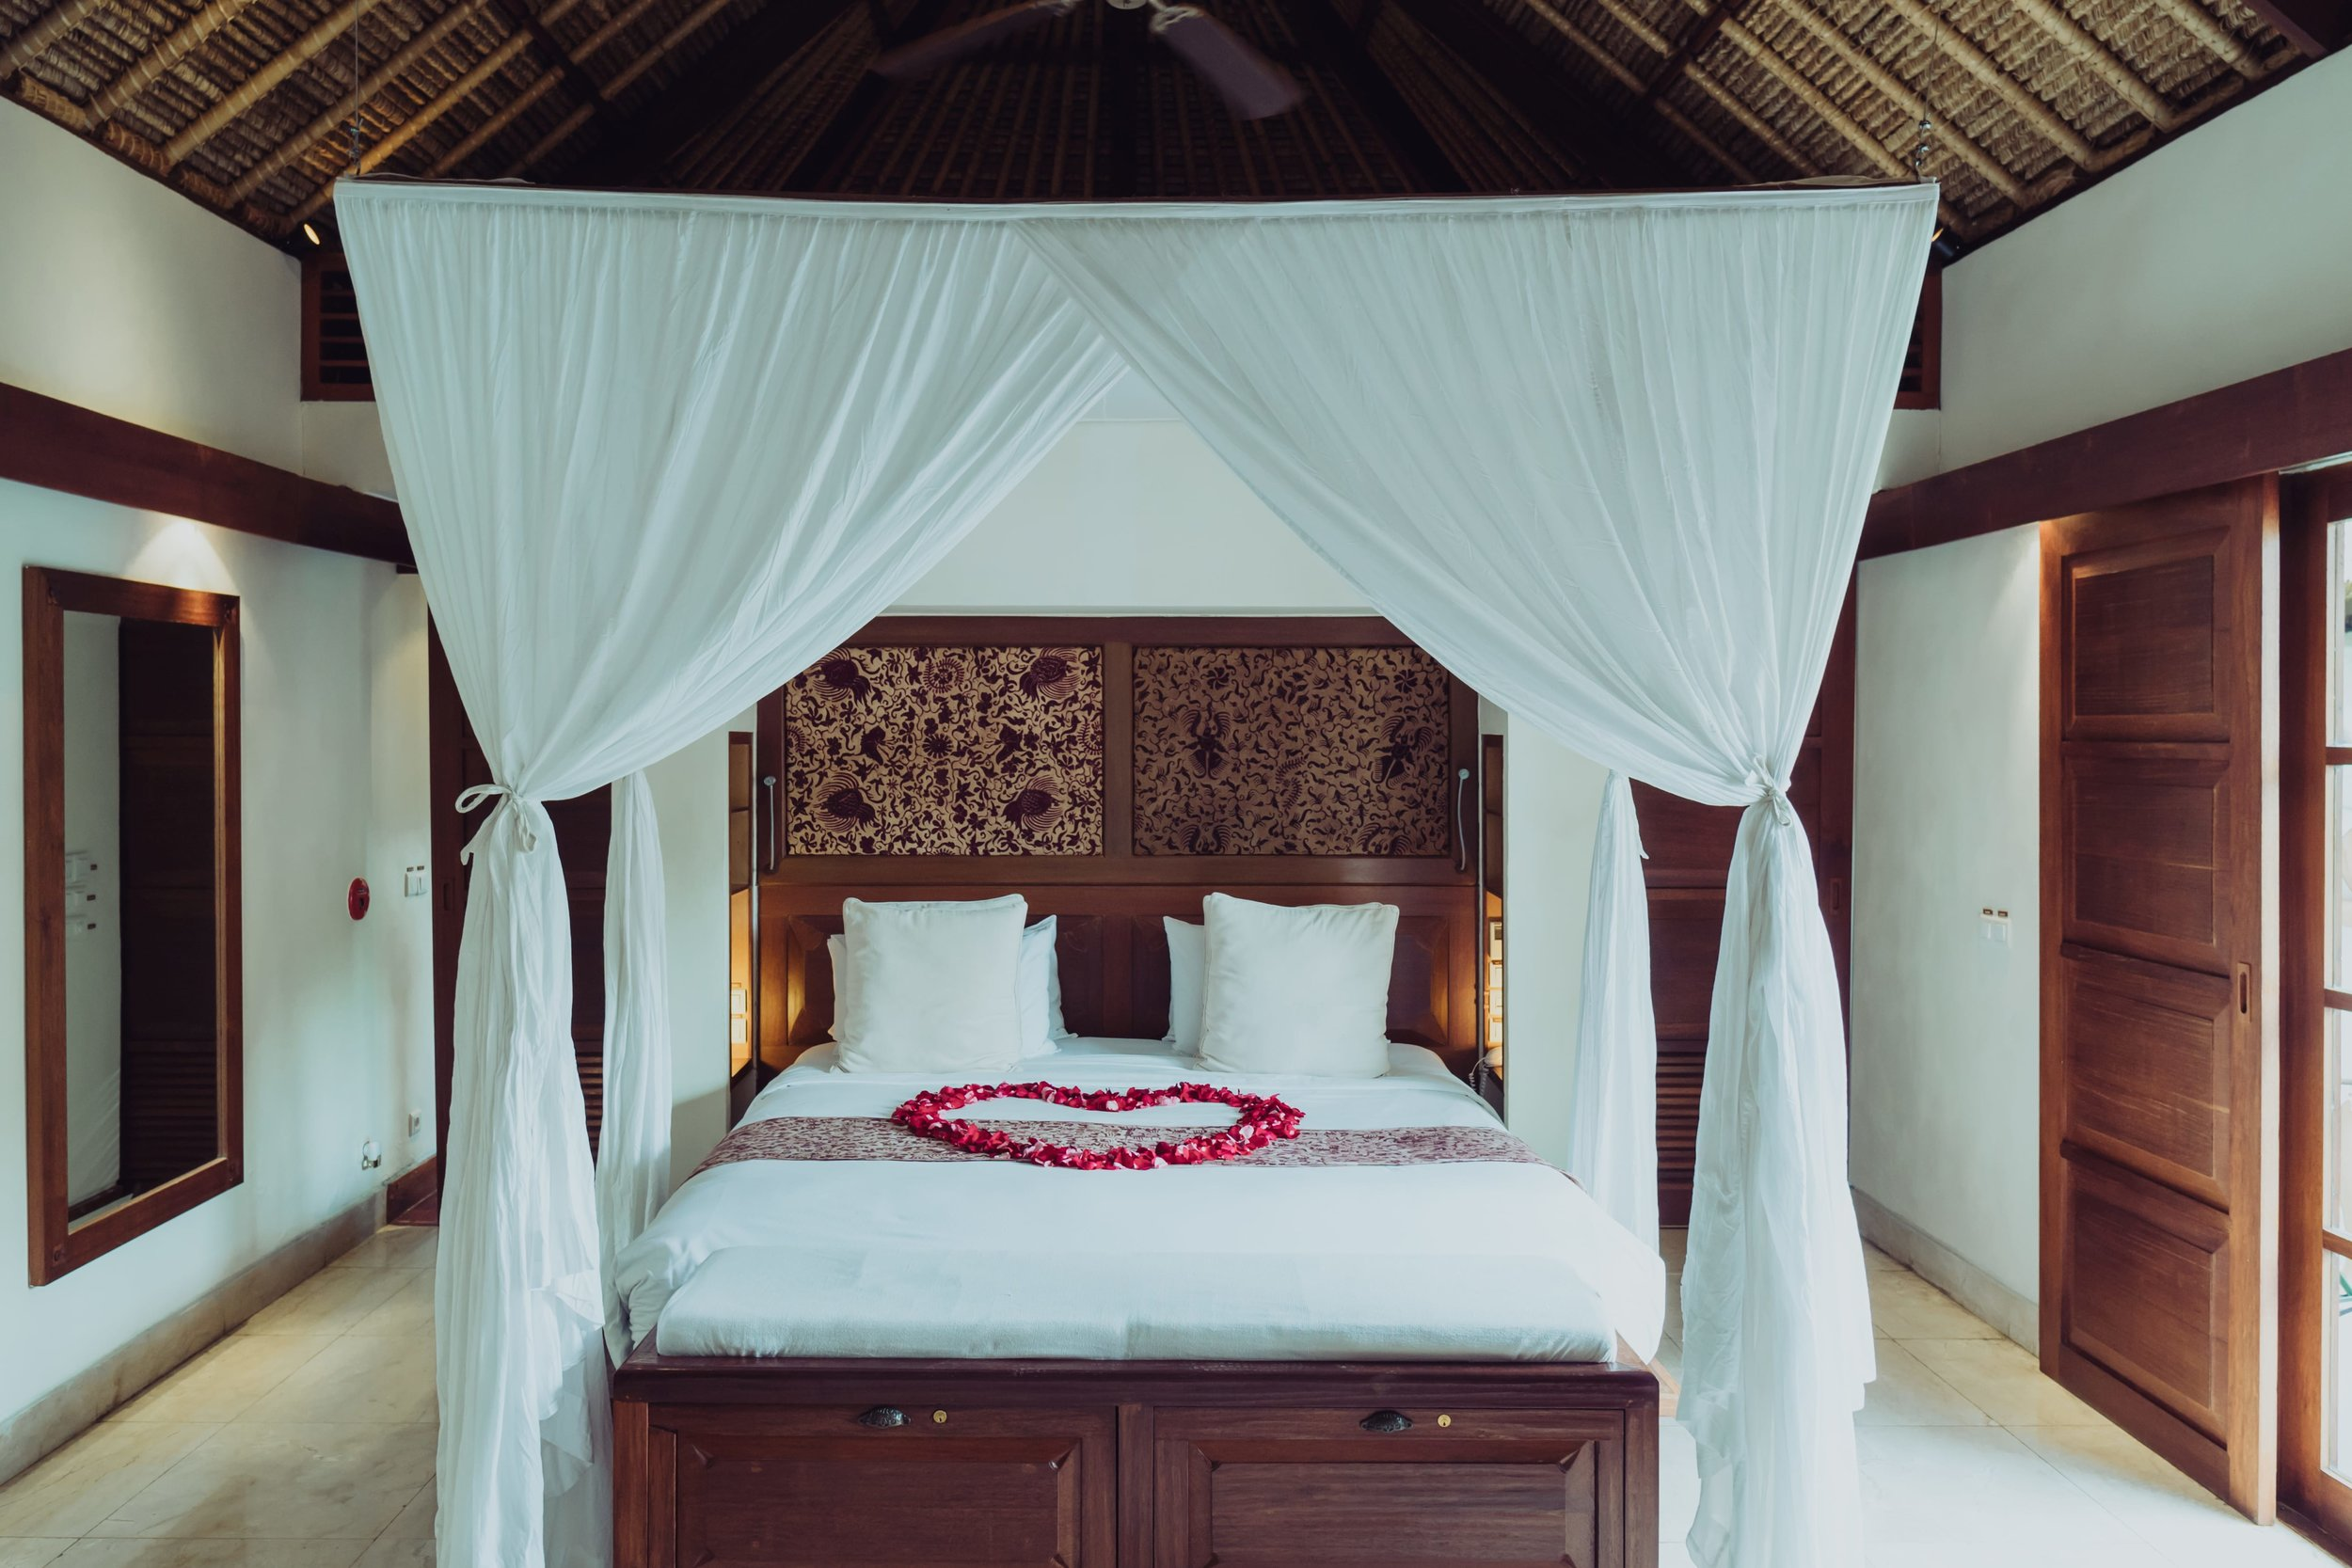 Accommodation - The luxurious honeymoon suite with private plunge pool is the perfect place for the bridal party to get ready and then to relax as newlyweds after your wedding.